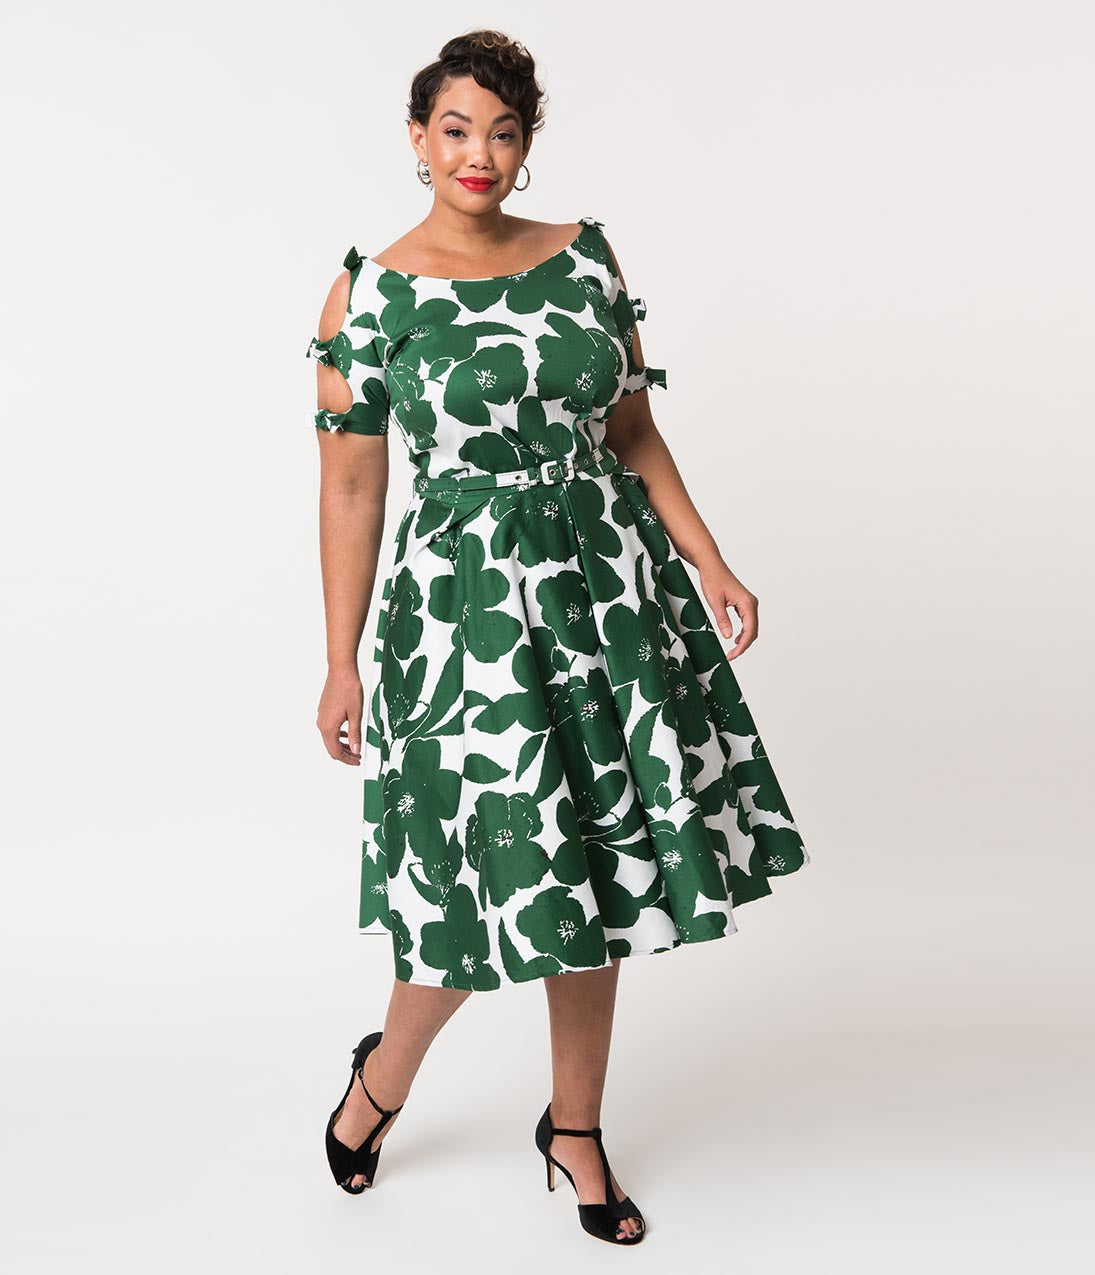 60s 70s Plus Size Dresses, Clothing, Costumes Unique Vintage Plus Size 1950S White  Green Floral Bow Sleeve Selma Swing Dress $98.00 AT vintagedancer.com